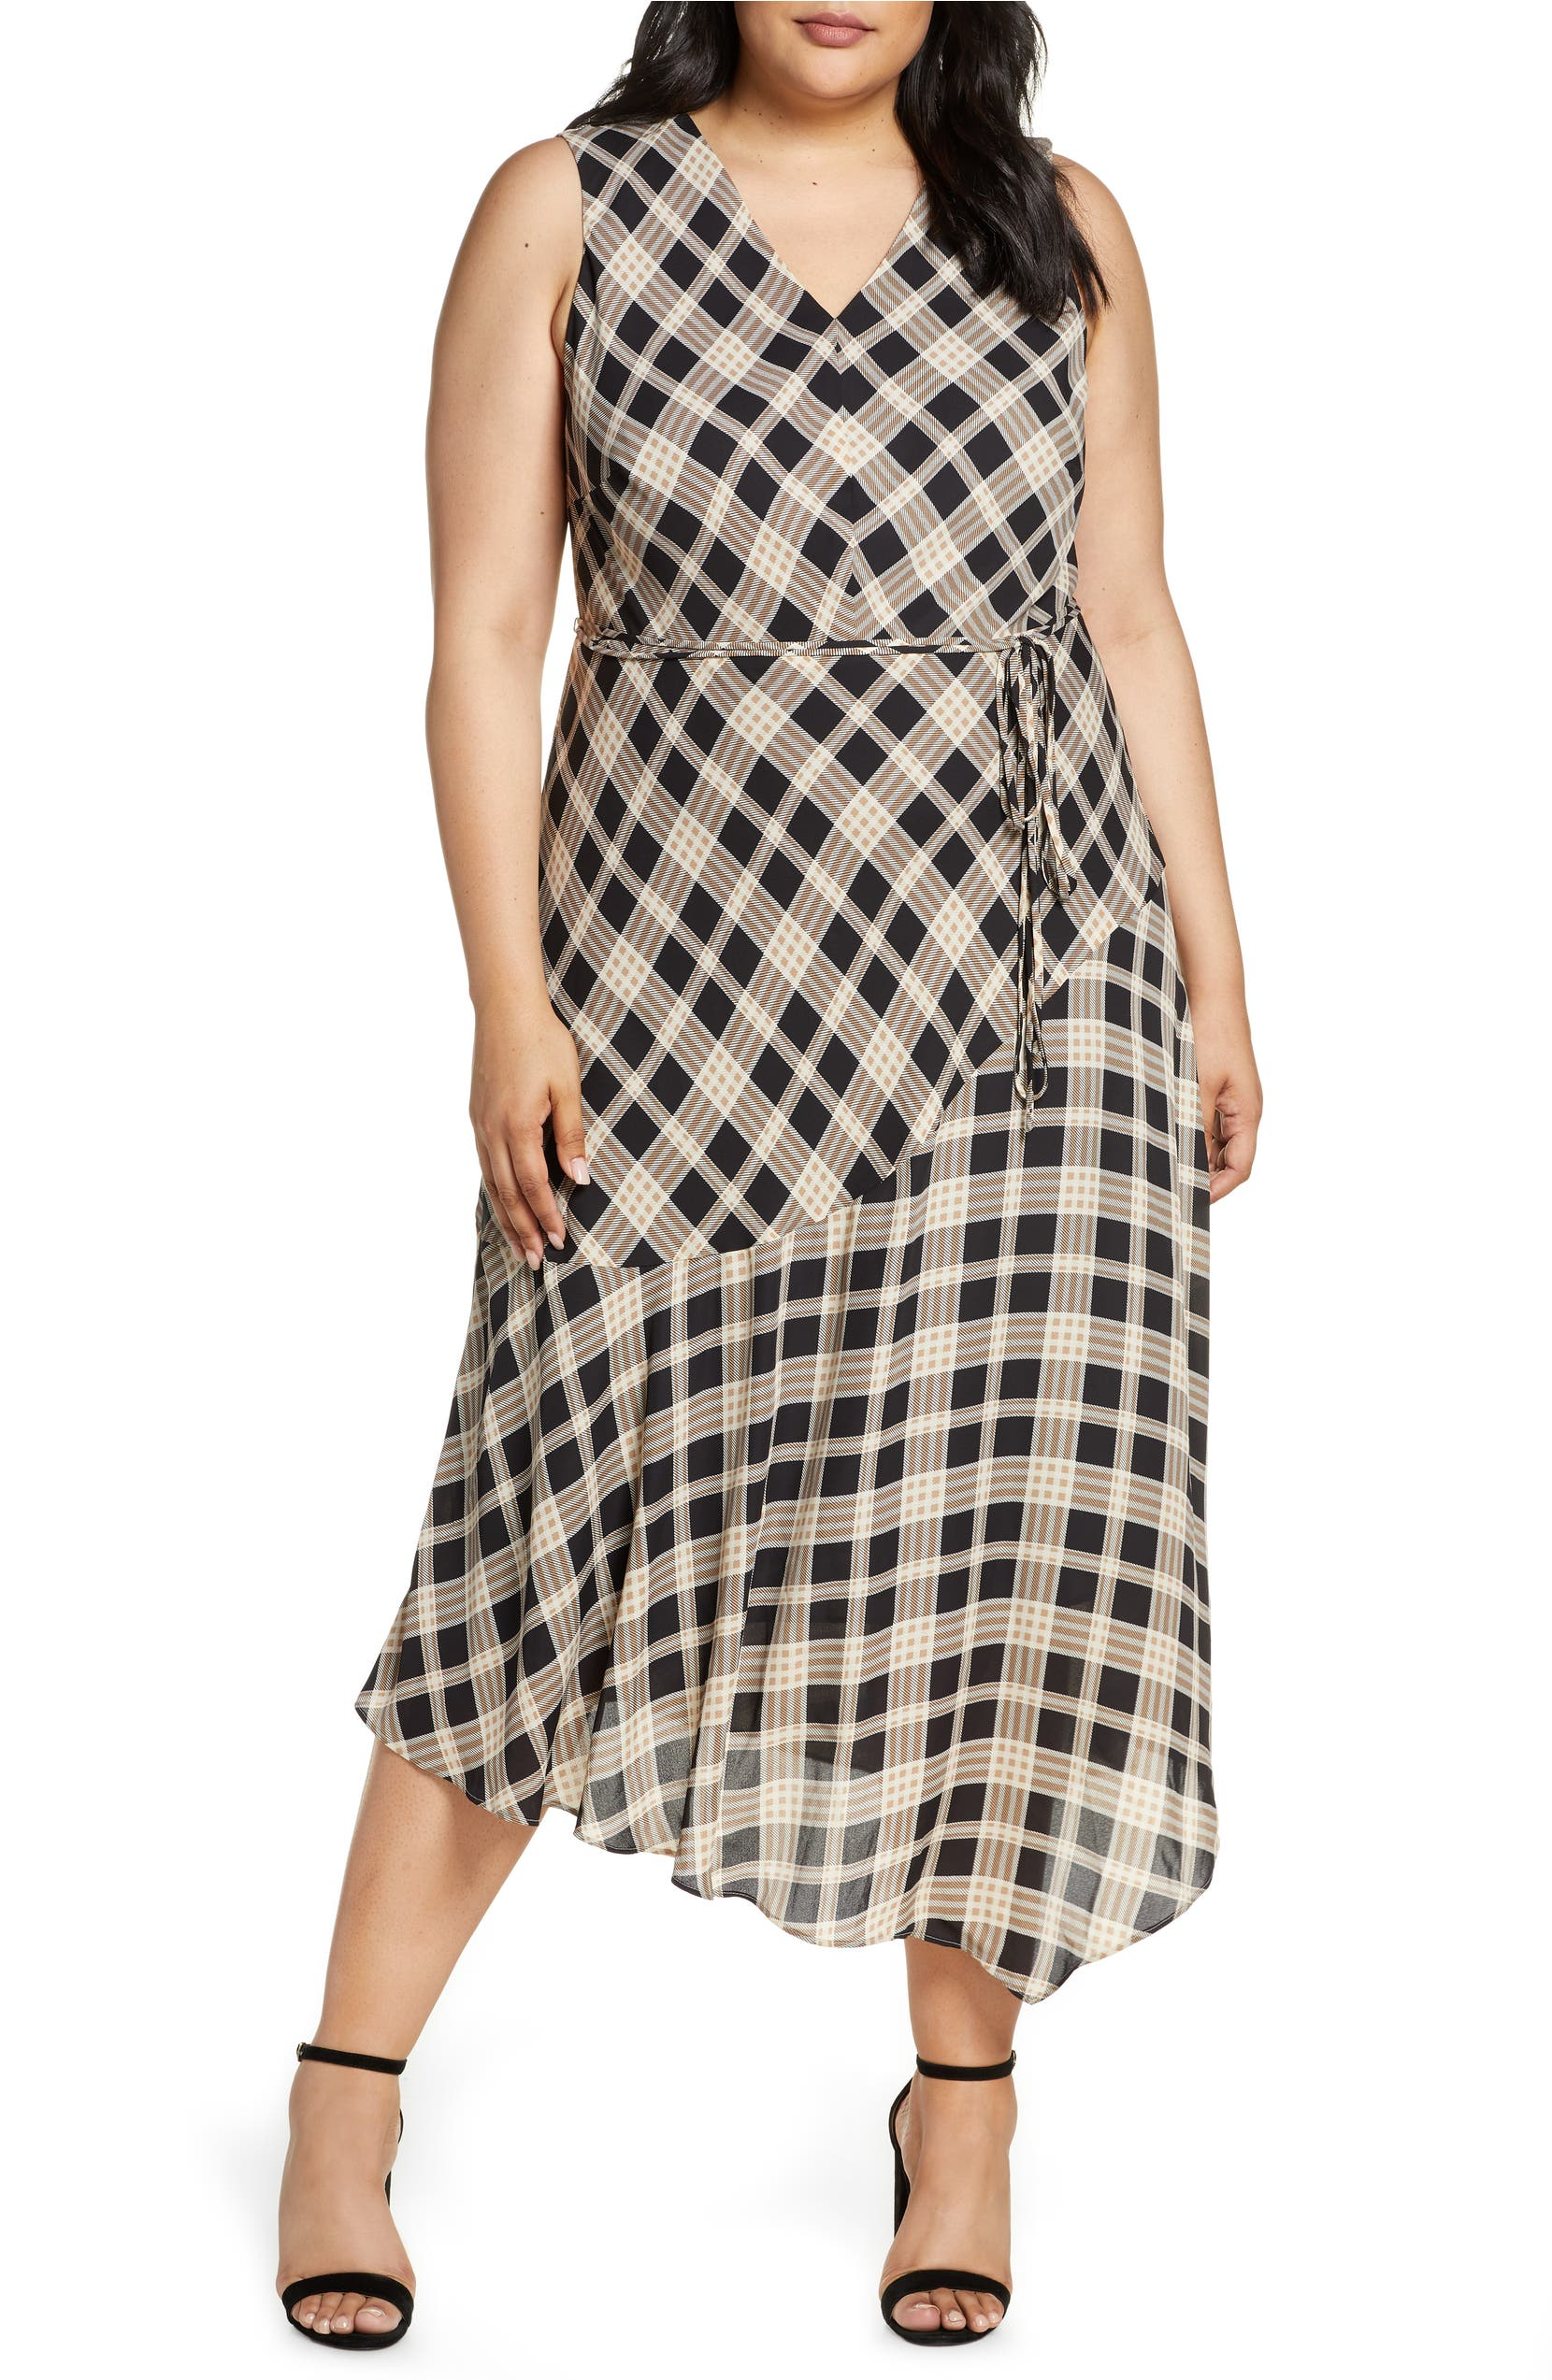 Highland Plaid Asymmetrical Sleeveless Dress